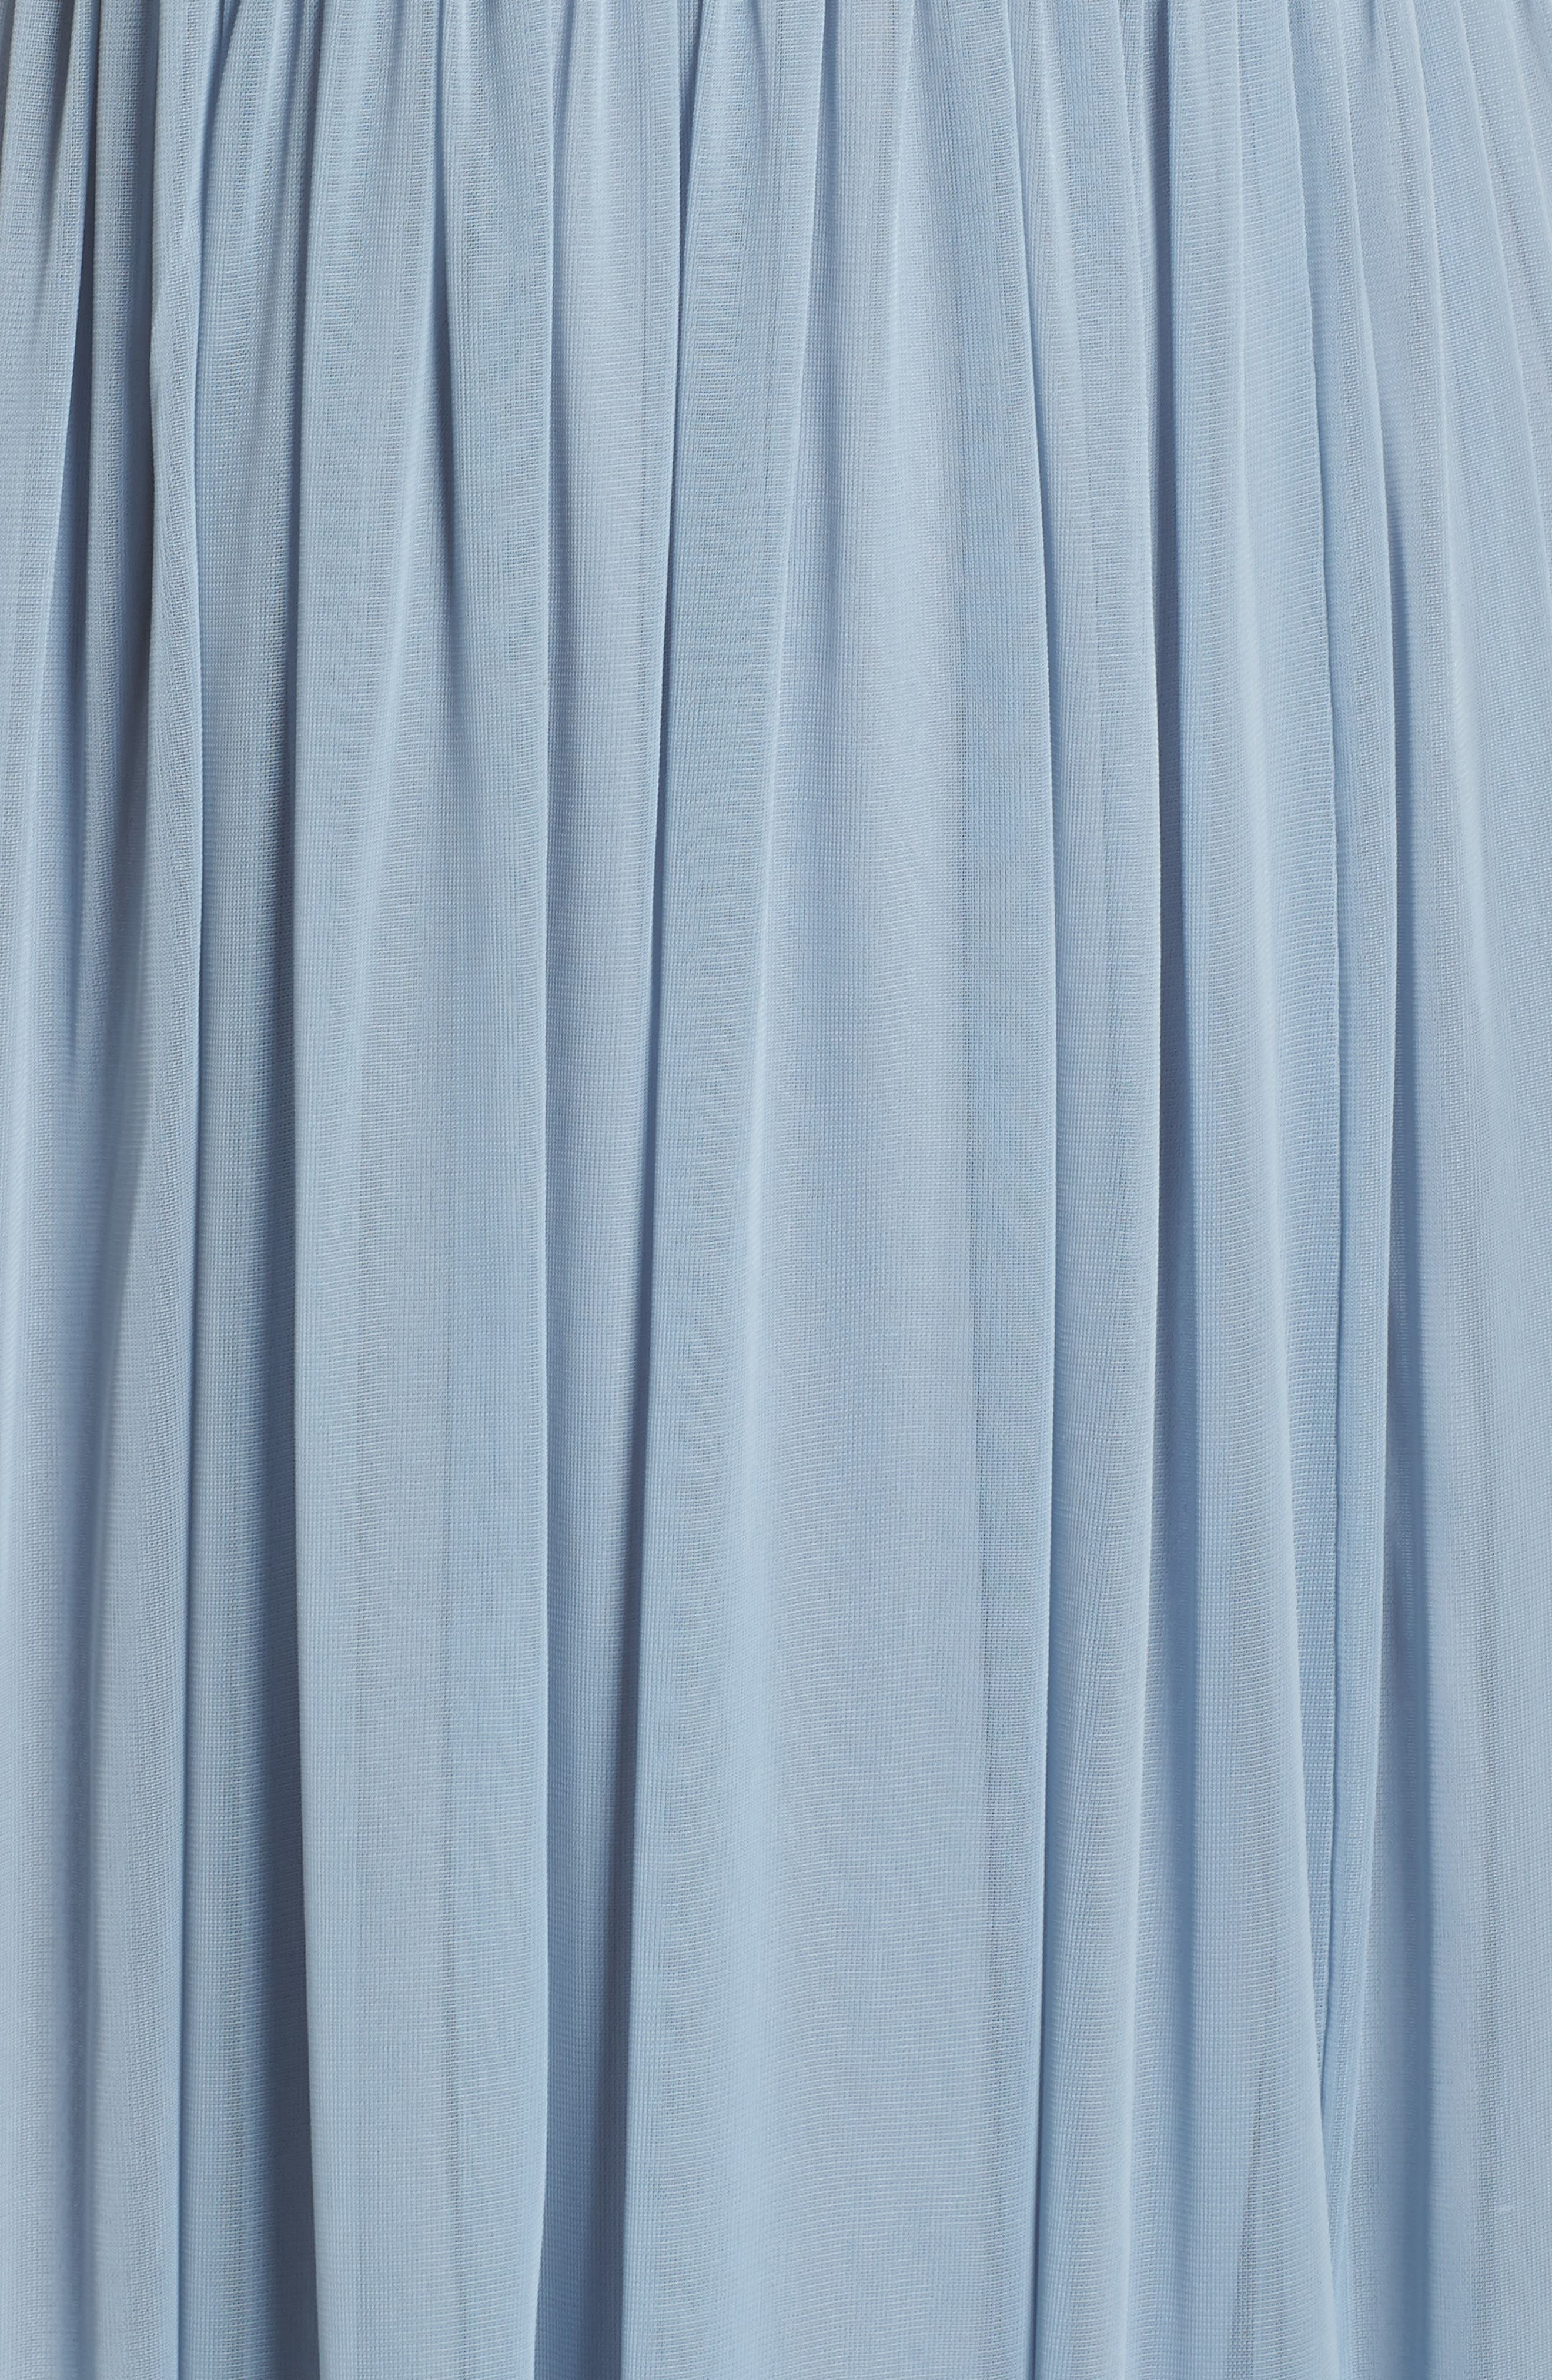 Shirred Chiffon Gown,                             Alternate thumbnail 5, color,                             Dusty Periwinkle